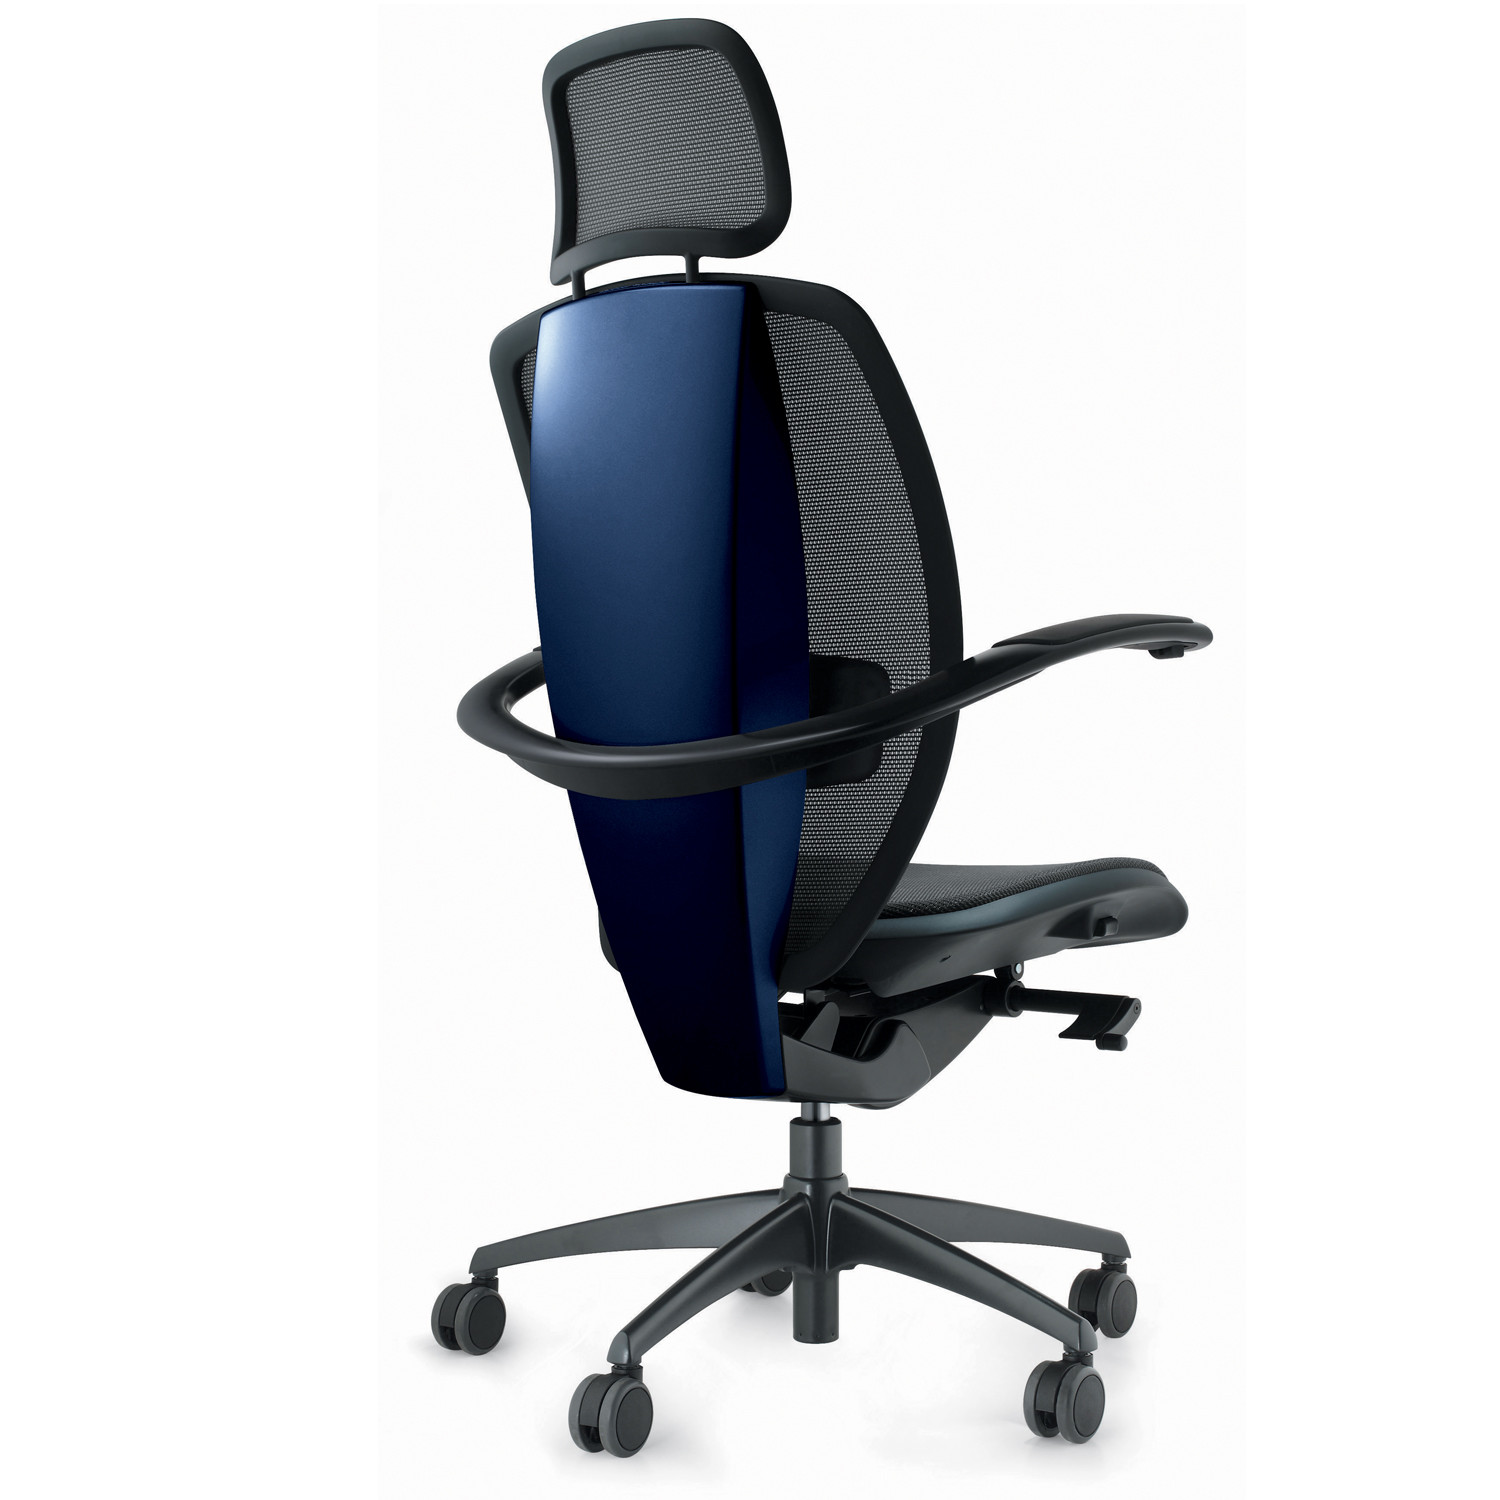 Xten Executive Office Chair with headrest back detail